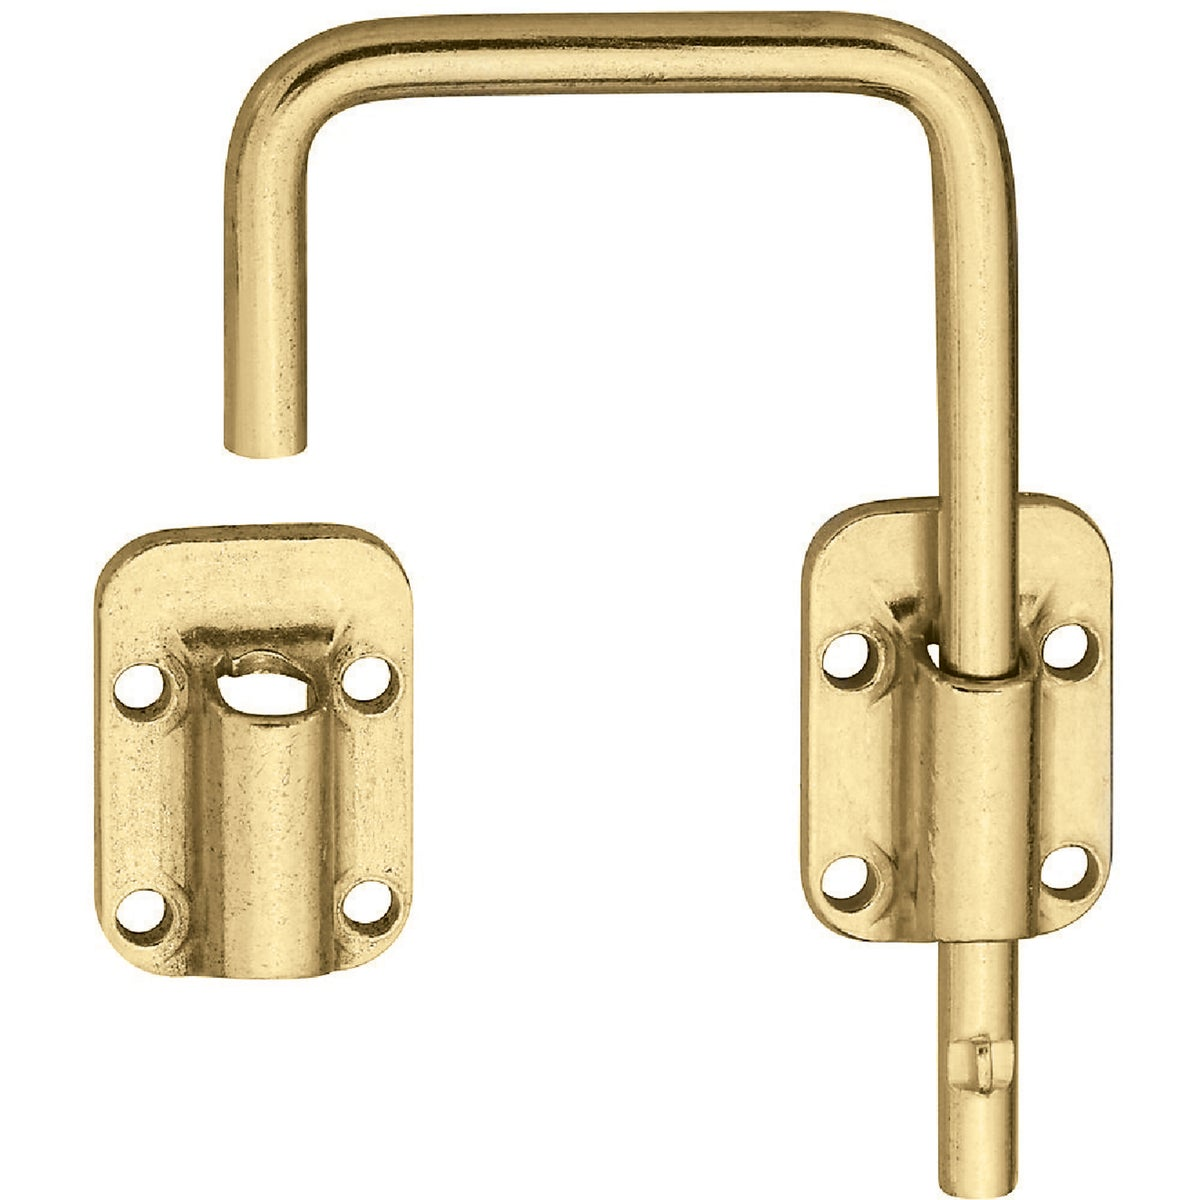 "2-1/2"" BRASS DOOR LATCH"